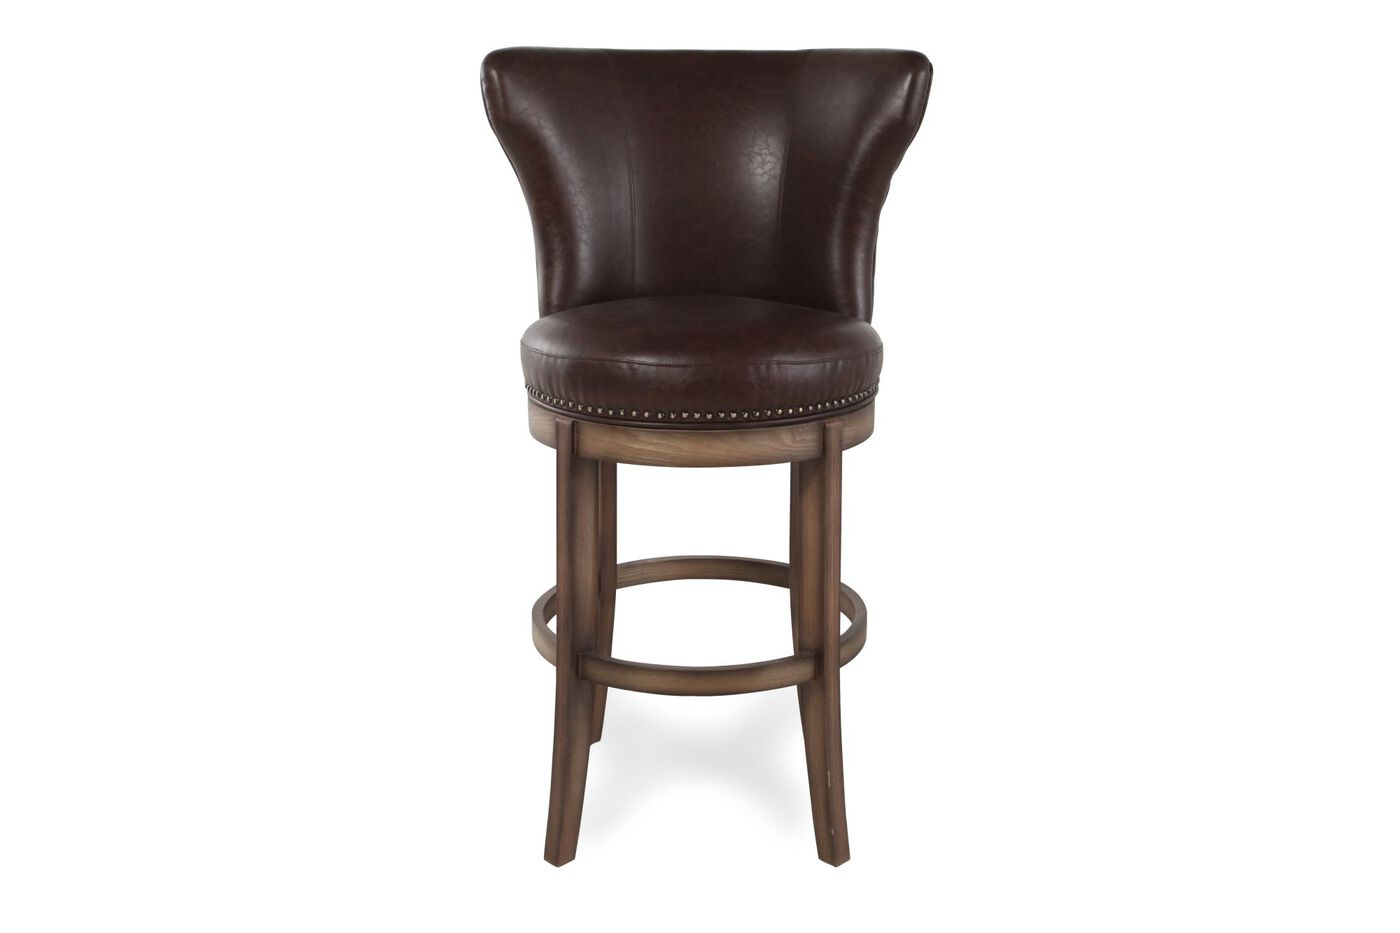 Nailhead Accented 44quot Swivel Bar Stool in Chestnut  : BLVD Y629B047DU6017K from www.mathisbrothers.com size 1400 x 933 jpeg 37kB